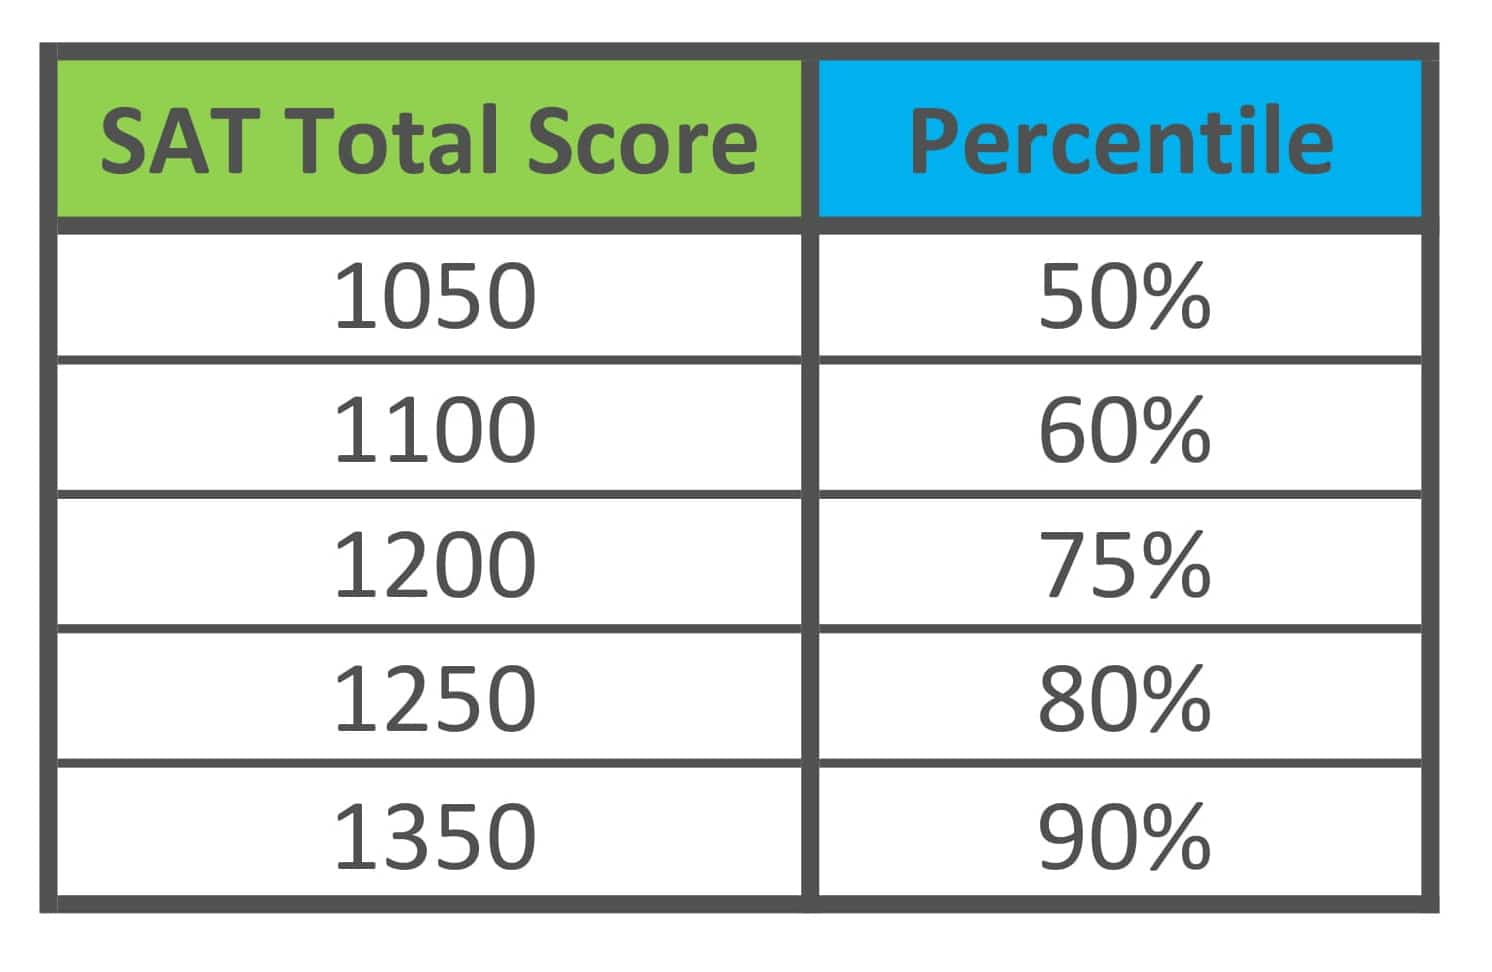 what is a good sat score?